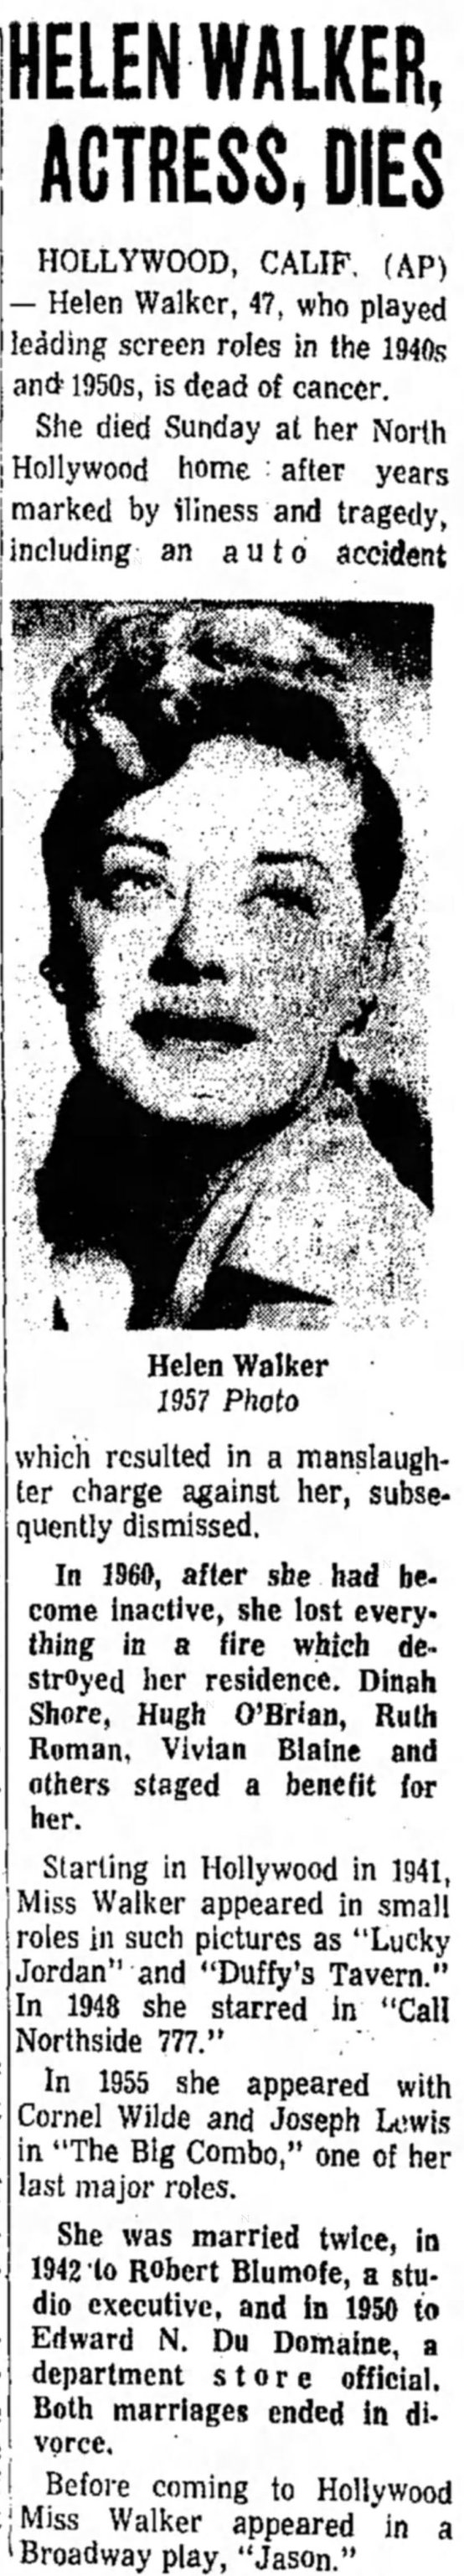 helen-walker-680312-the-des-moines-register-p4